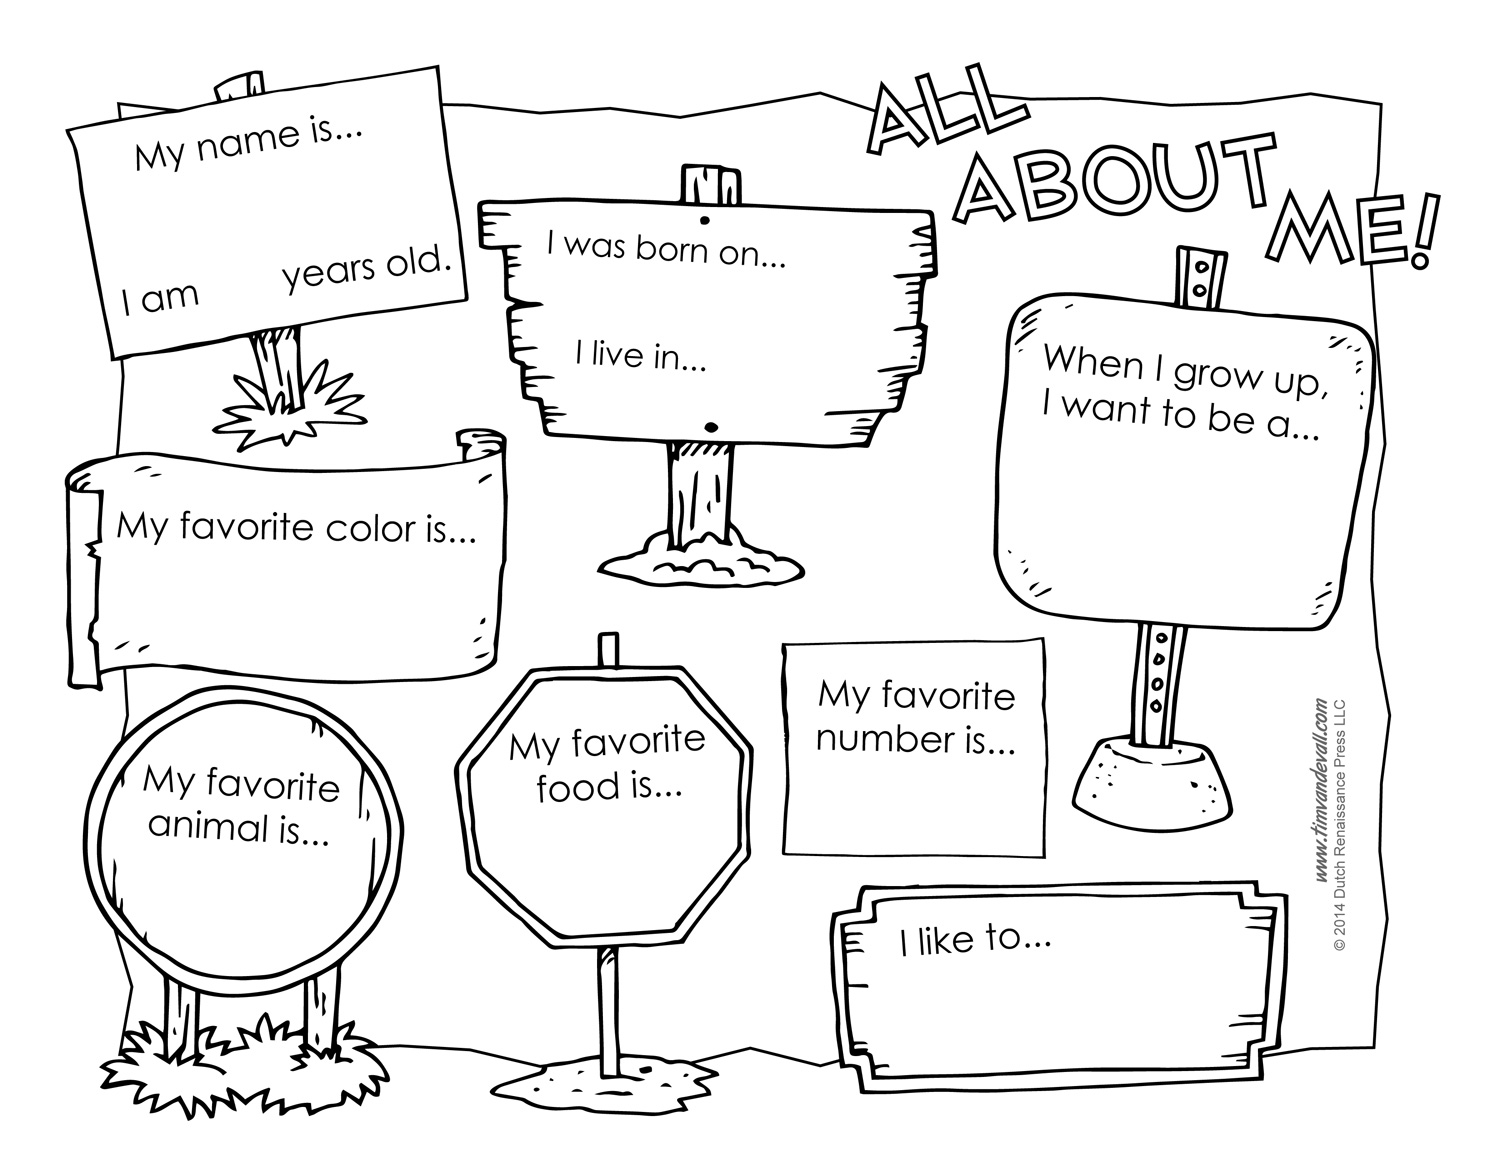 All About Me Worksheet Free - Tim's Printables